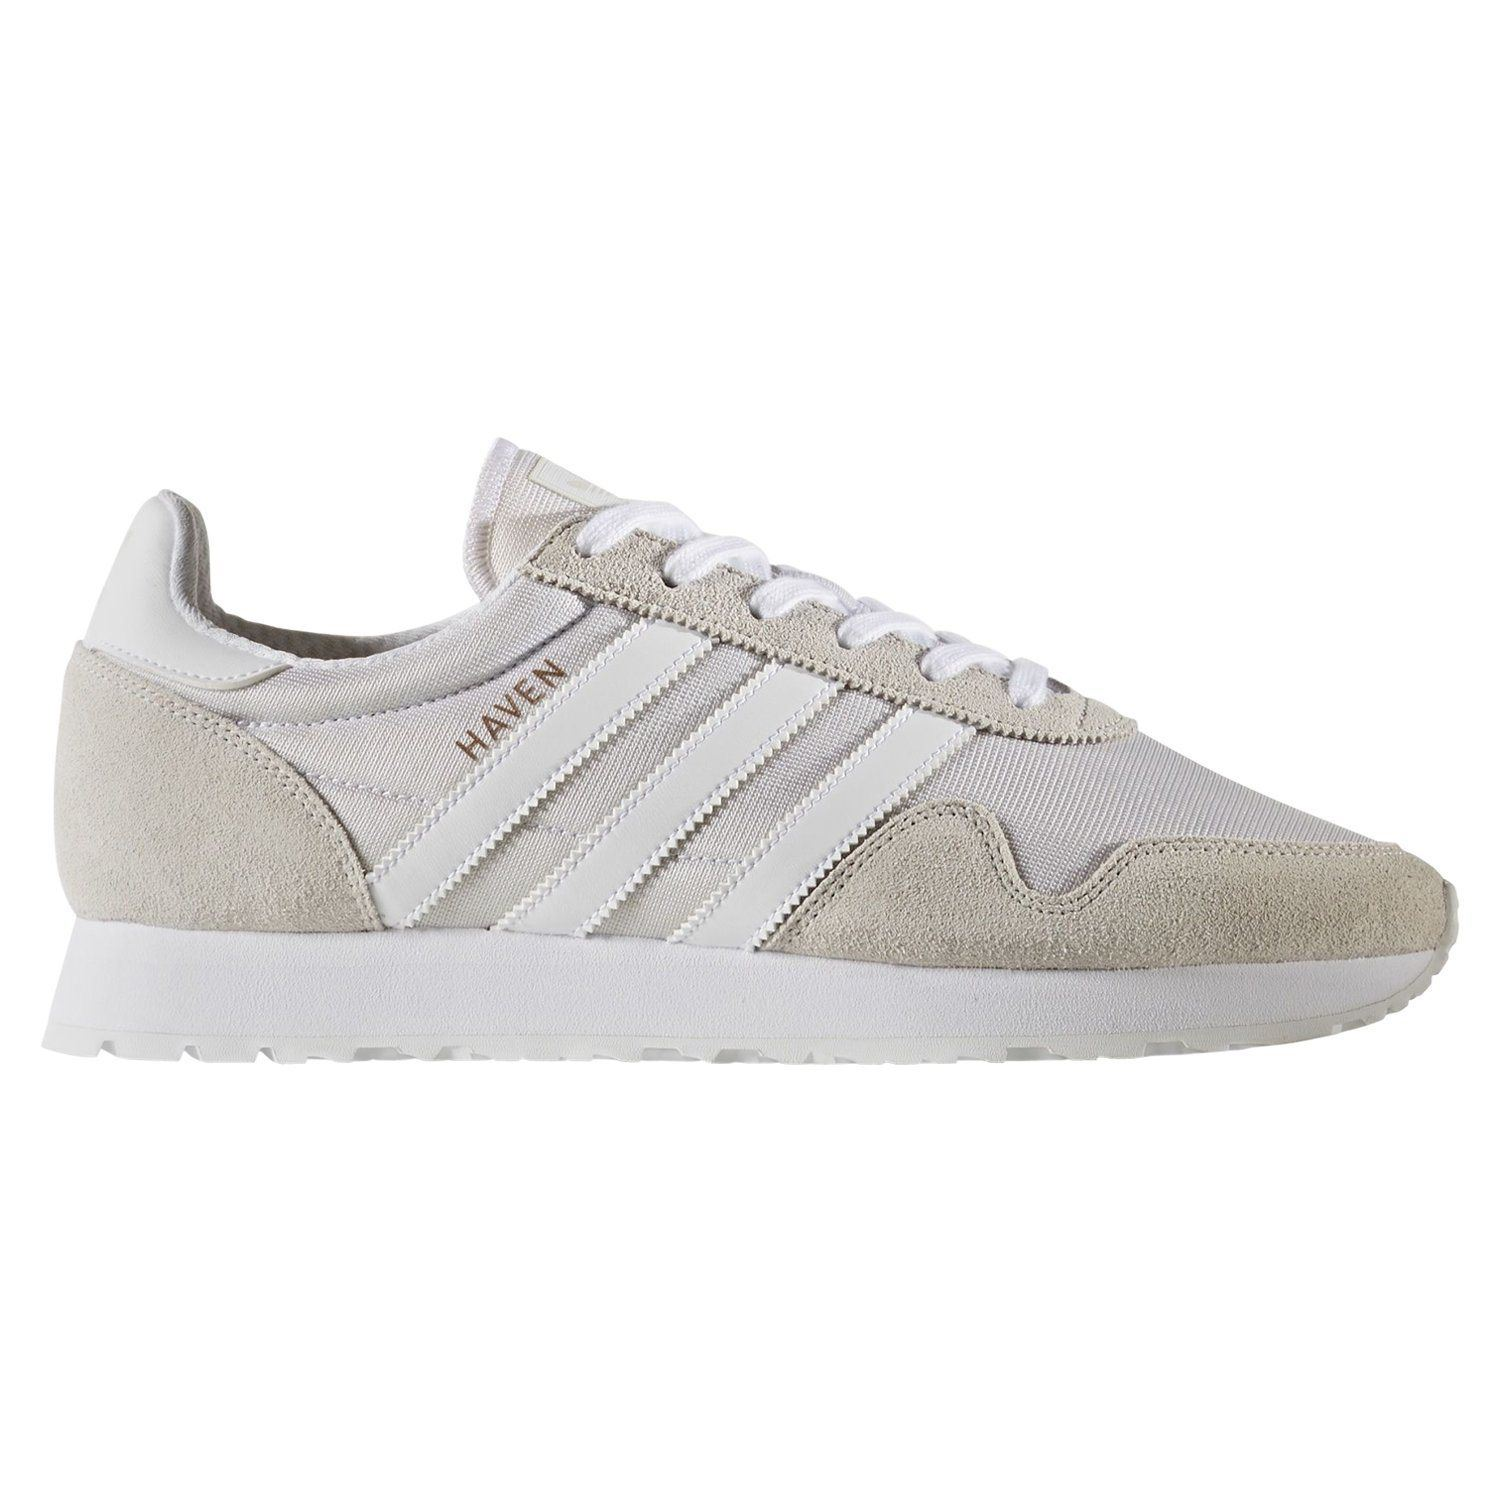 07e2bd3ffe6559 adidas ORIGINALS MEN S HAVEN TRAINERS WHITE SHOES SNEAKERS RETRO RUNNING NEW